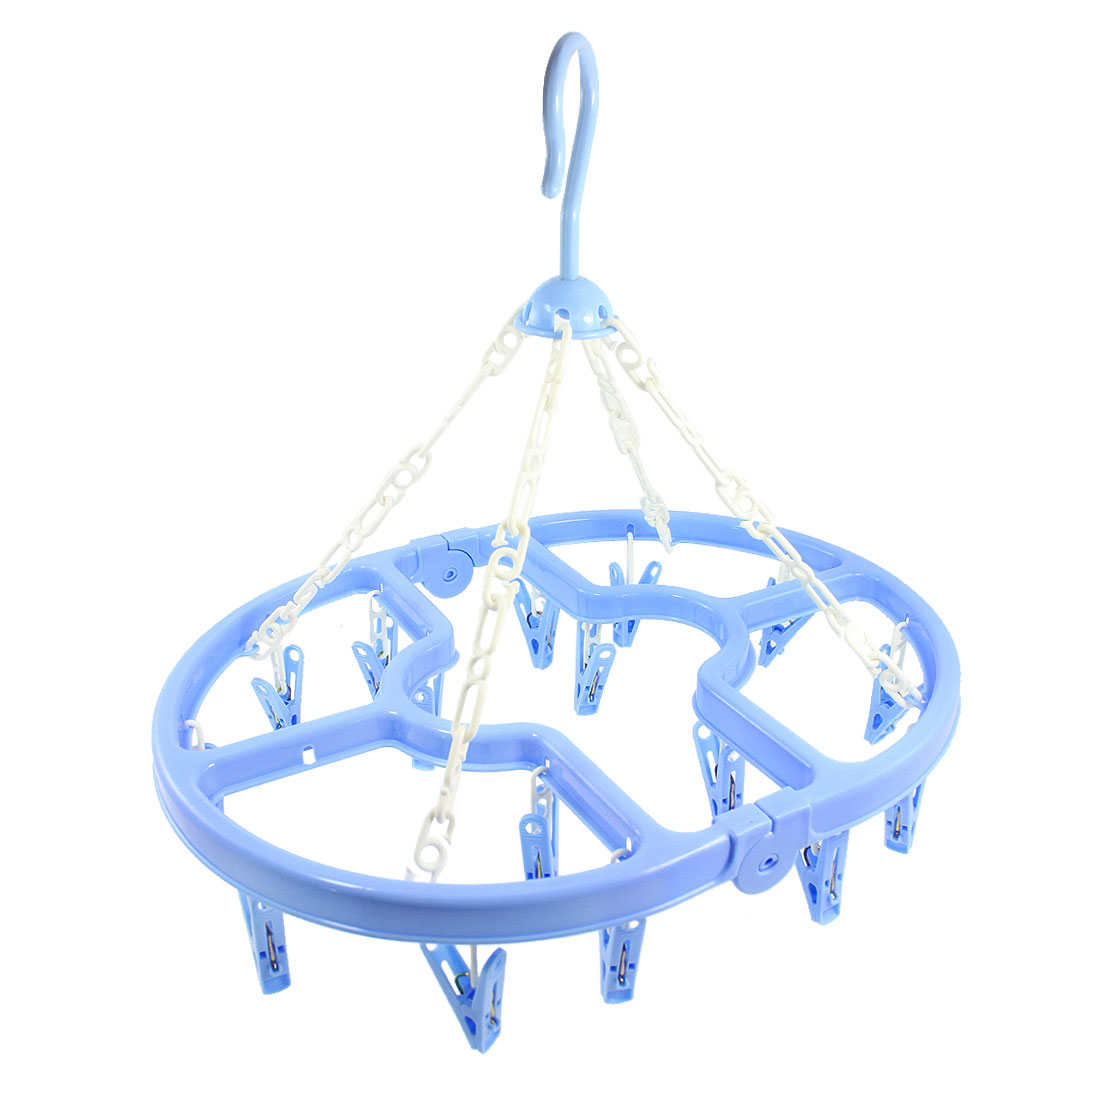 Home Laundry Light Blue Plastic Oval Frame 16 Clips Folding Clotheshorse Hanger 16 Clips